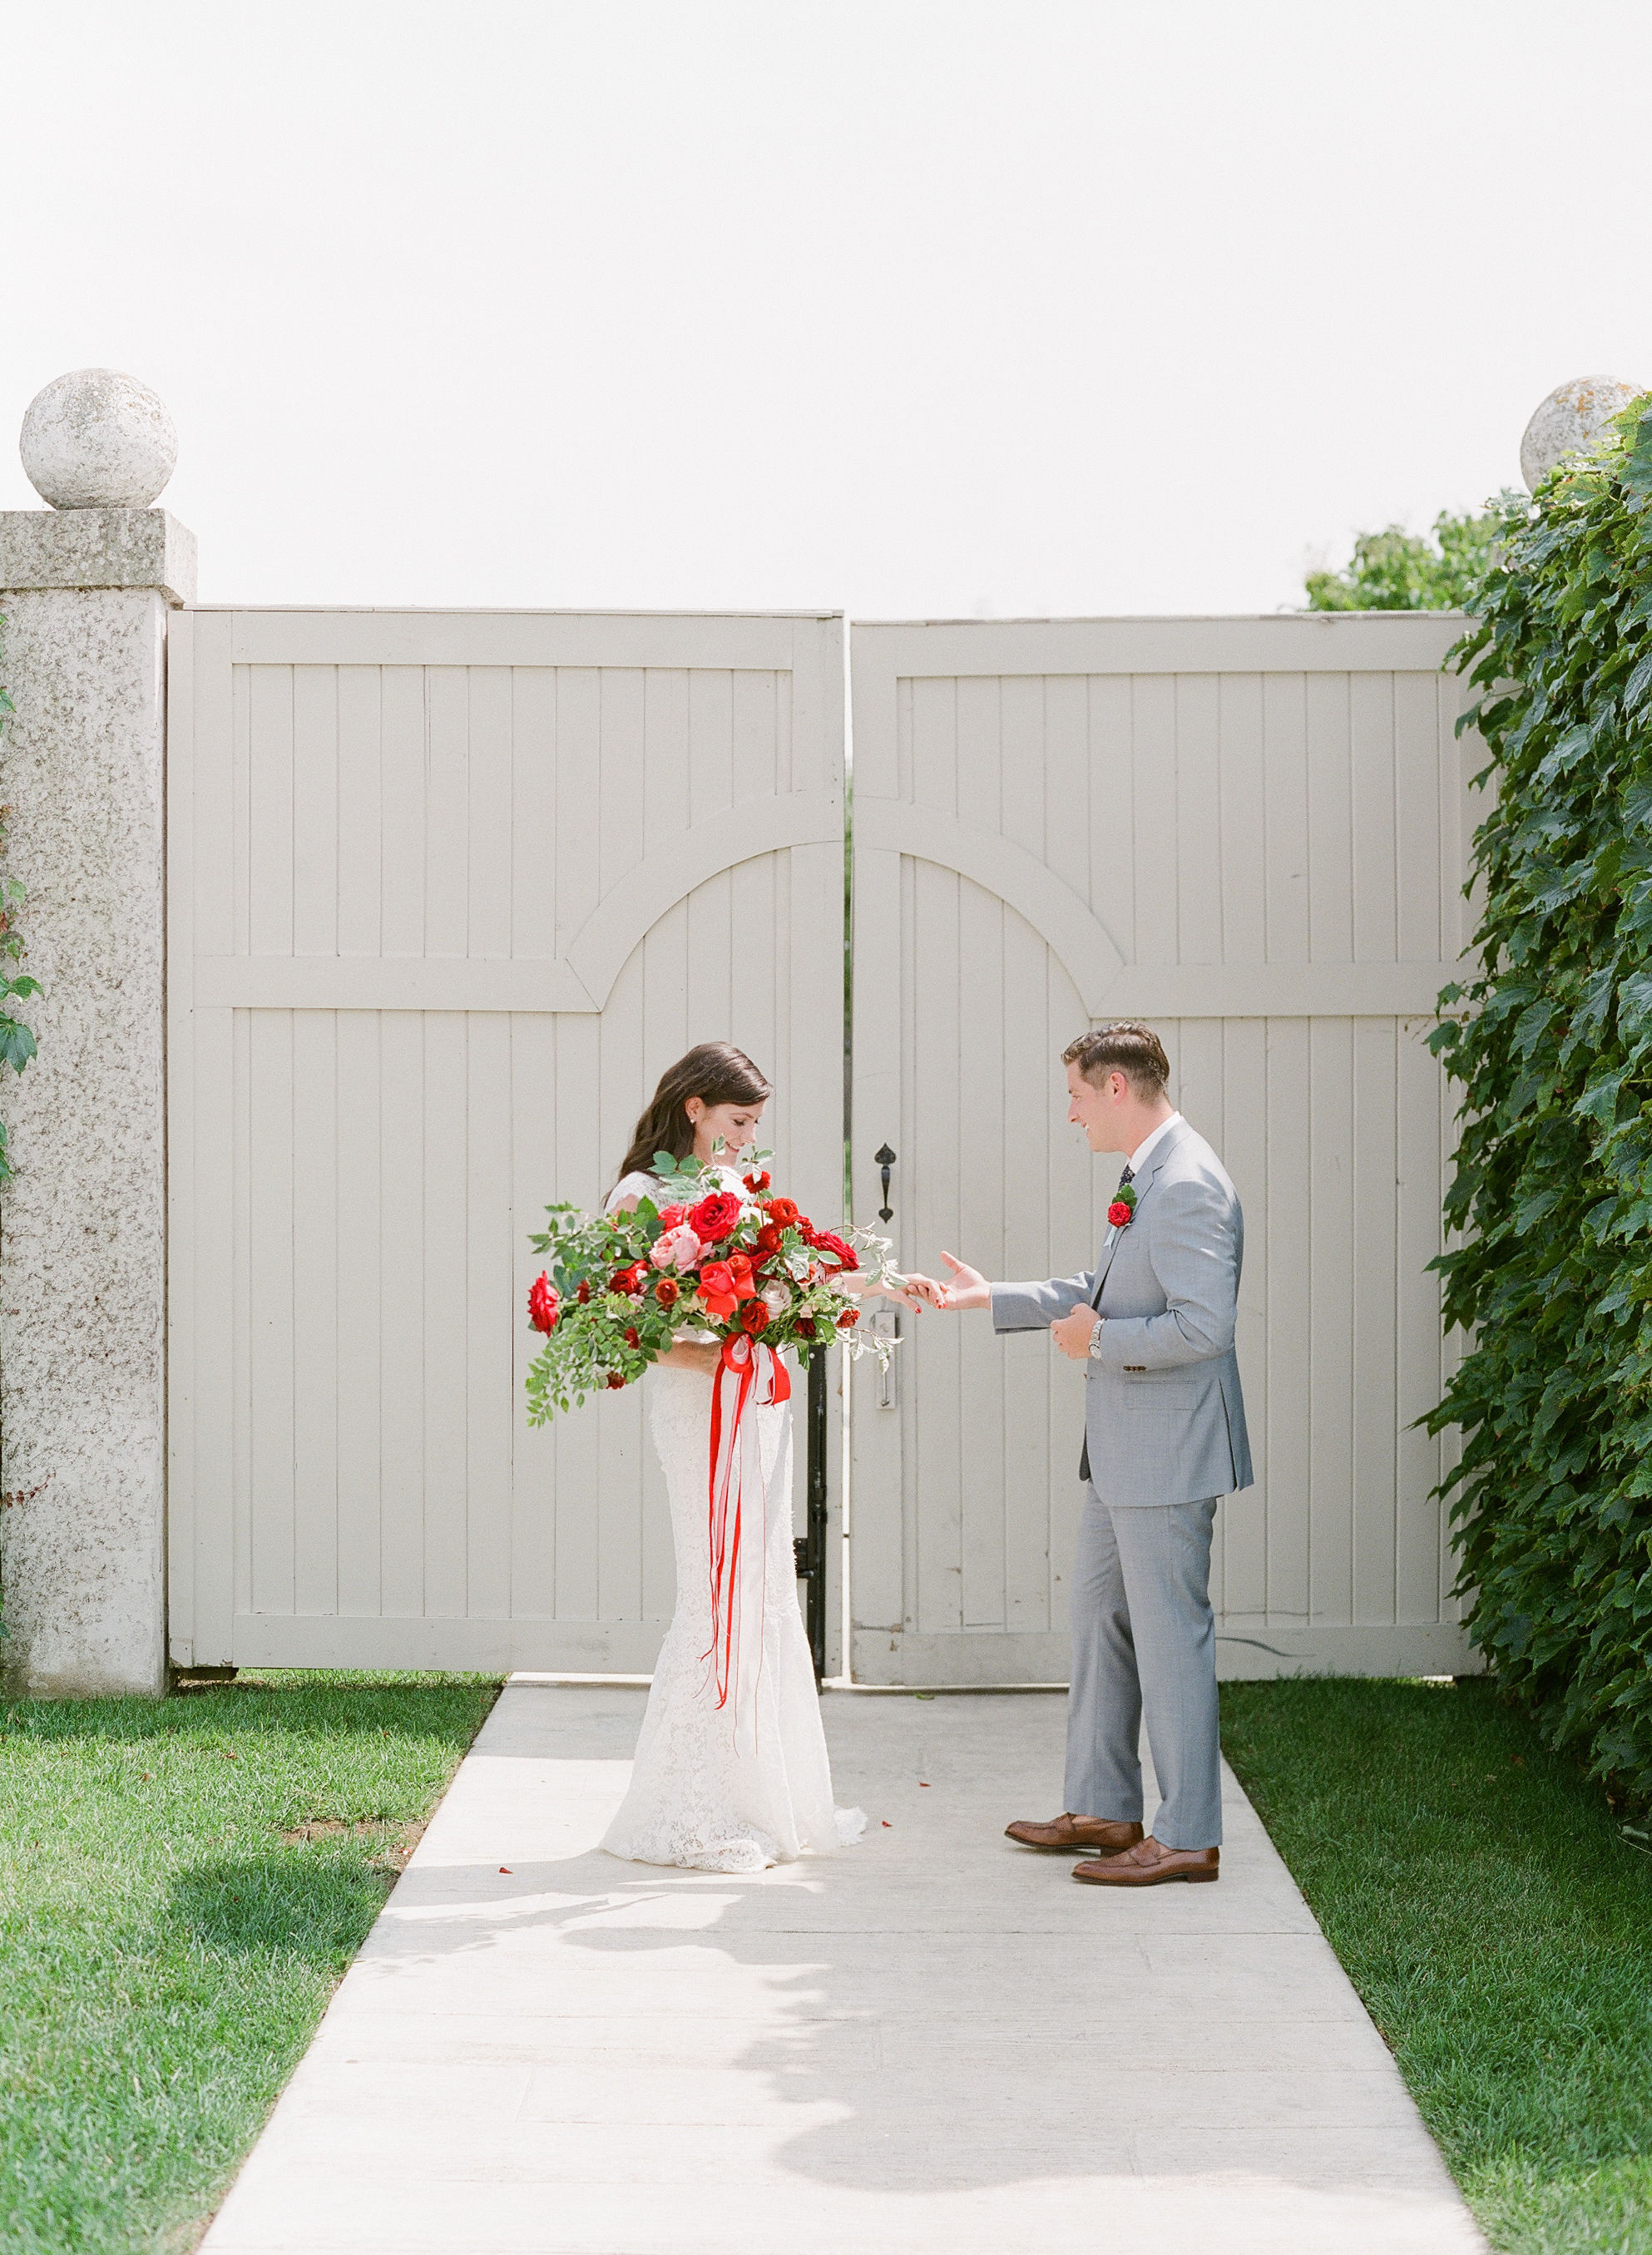 colleen stephen newport wedding first look outside of gate